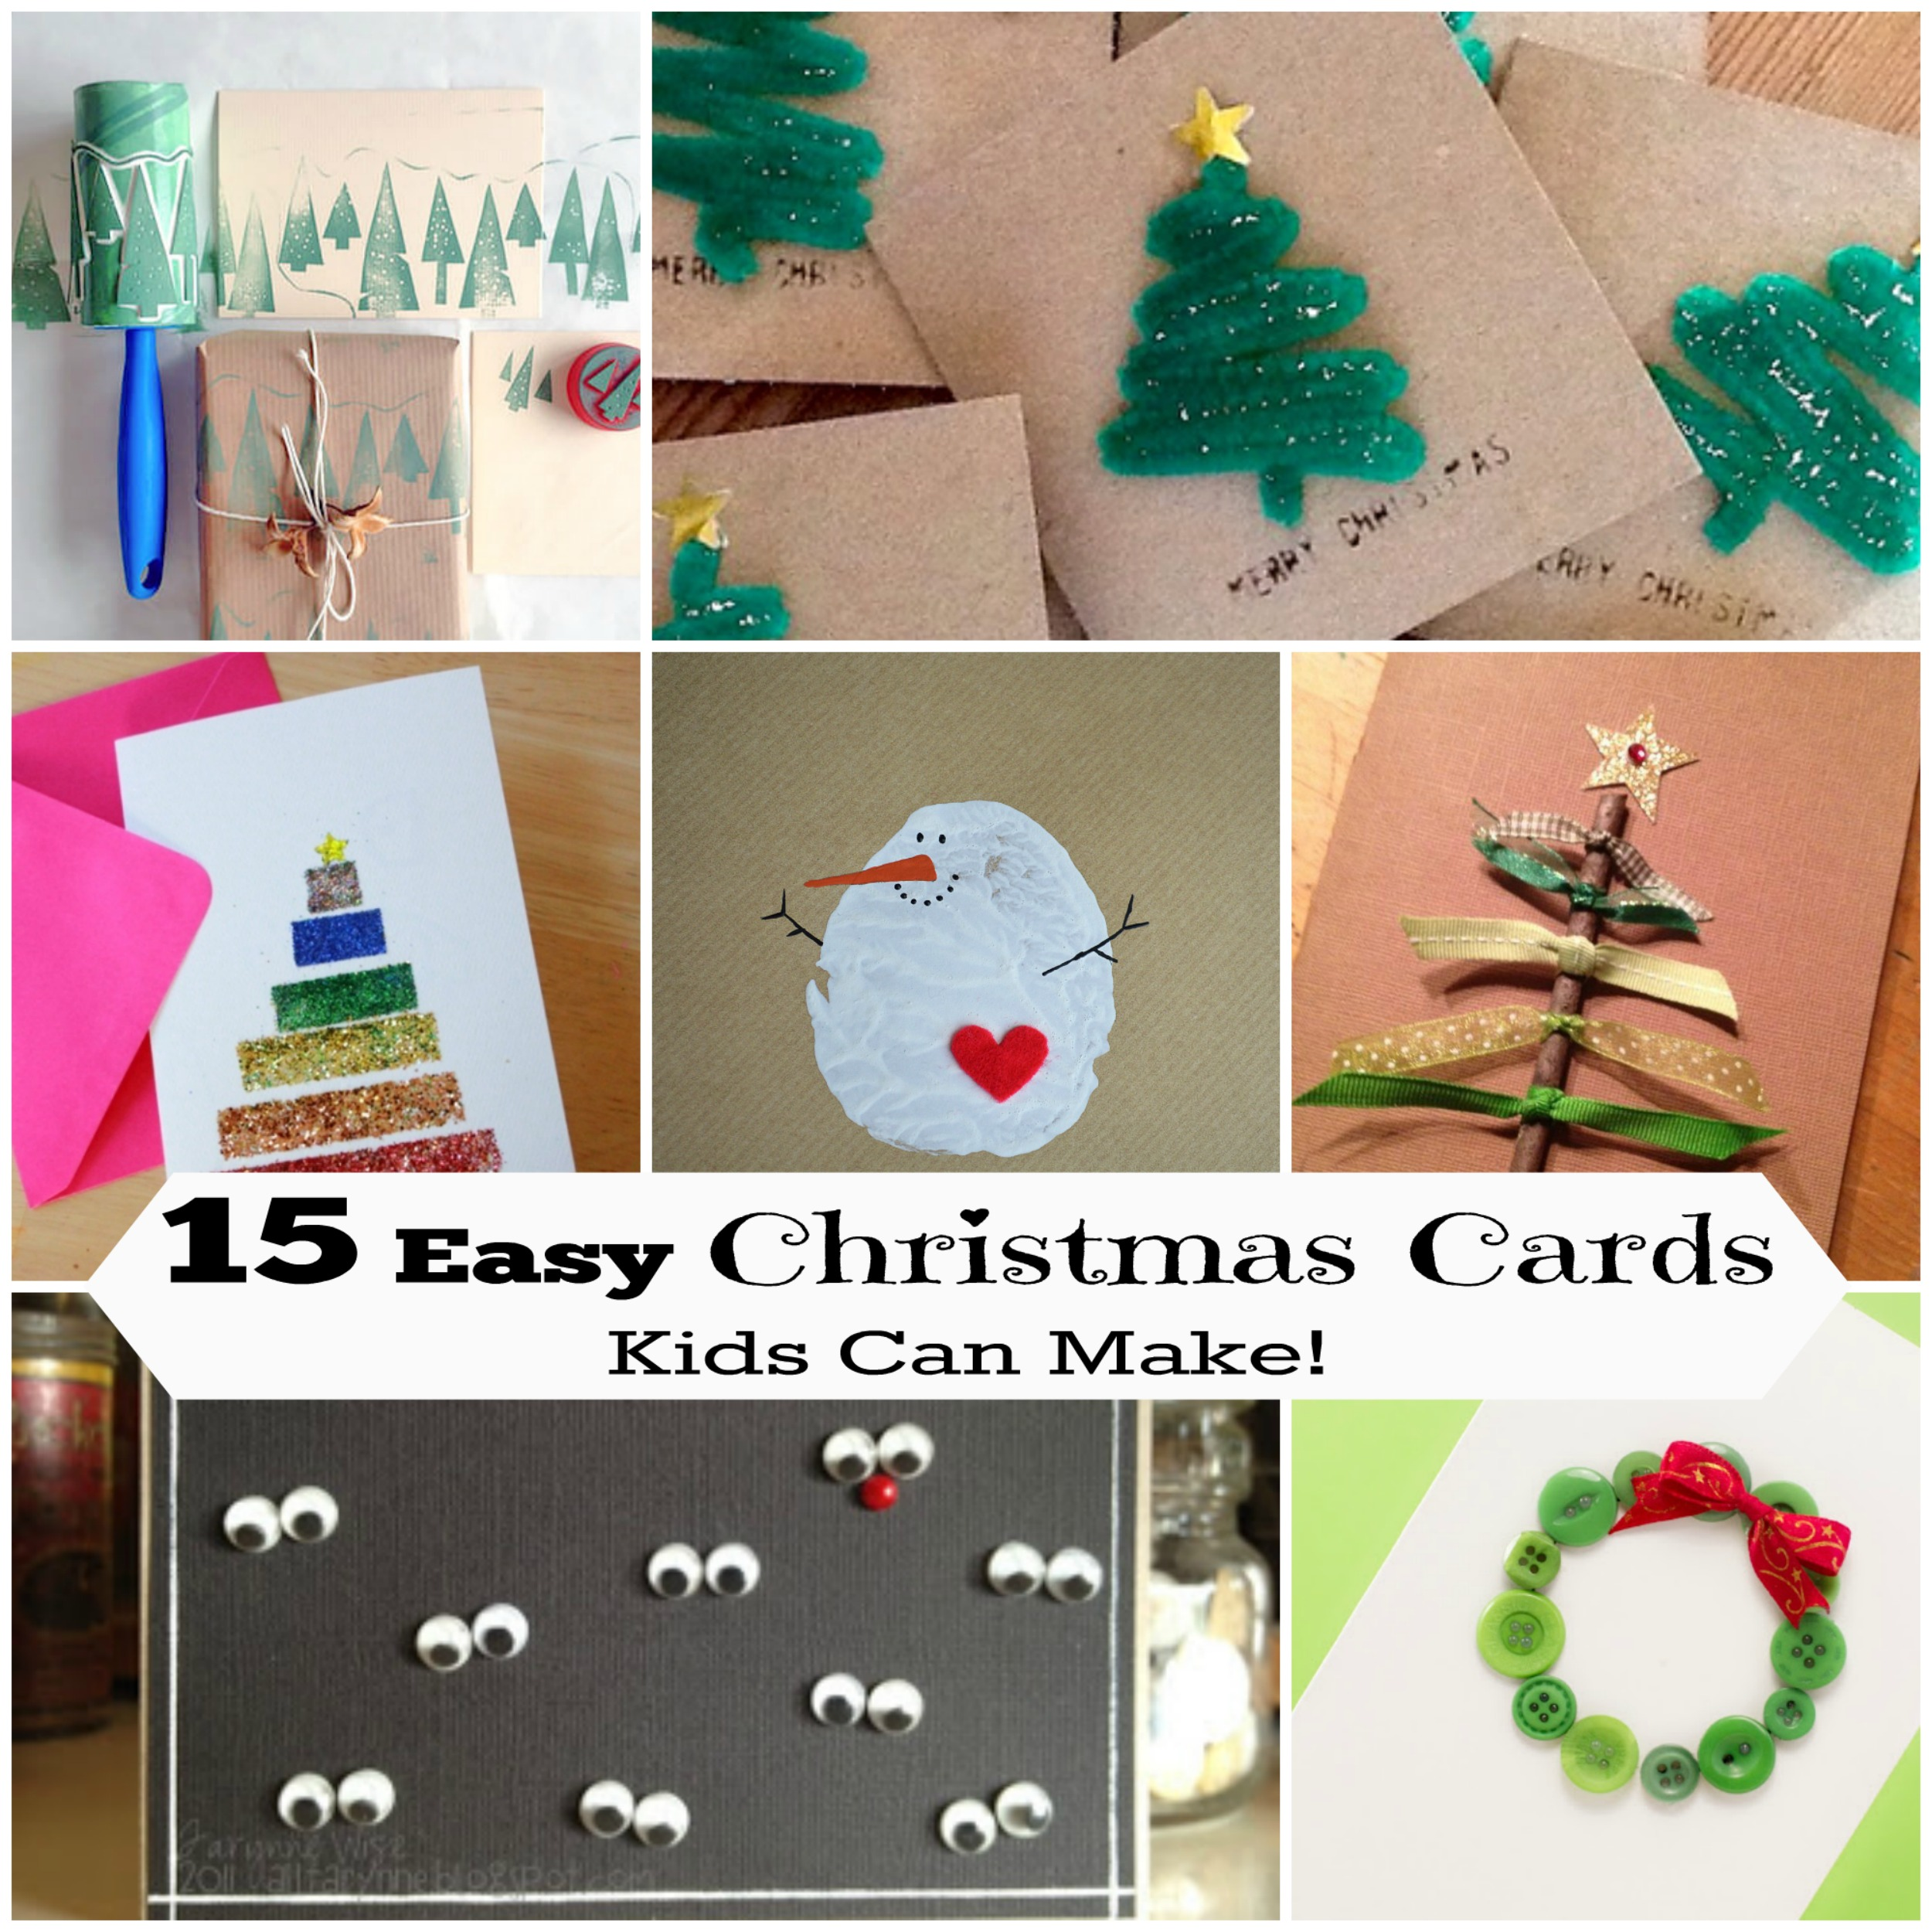 15 Diy Christmas Cards Kids Can Make Letters From Santa Blog